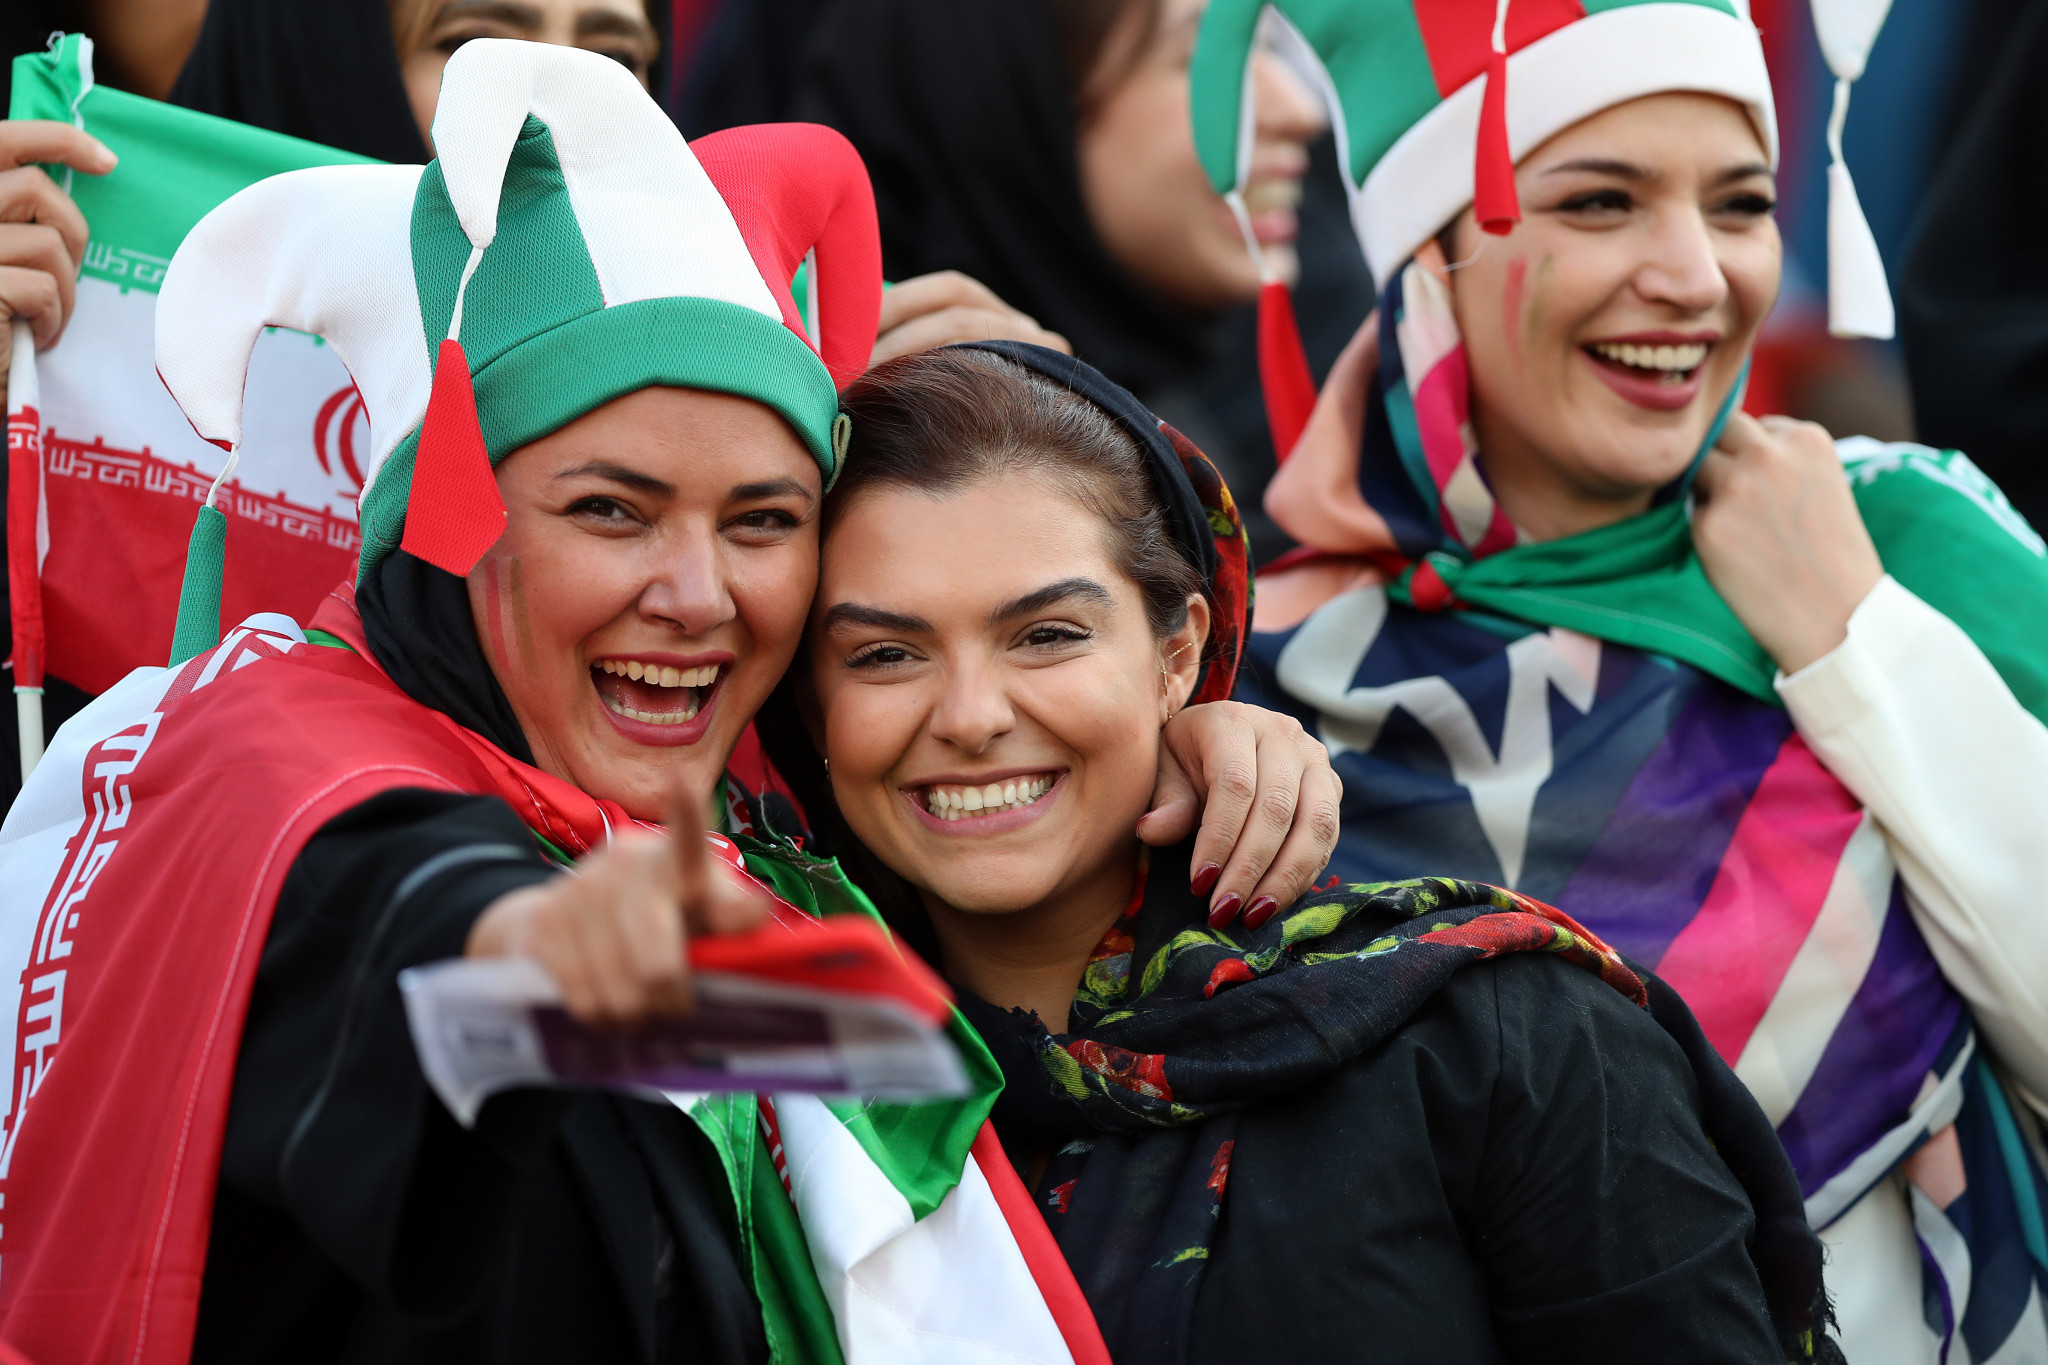 Women were allowed into Iran's football match against Cambodia at the Azadi Stadium in October 2019, breaking a 40-year ban ©Getty Images